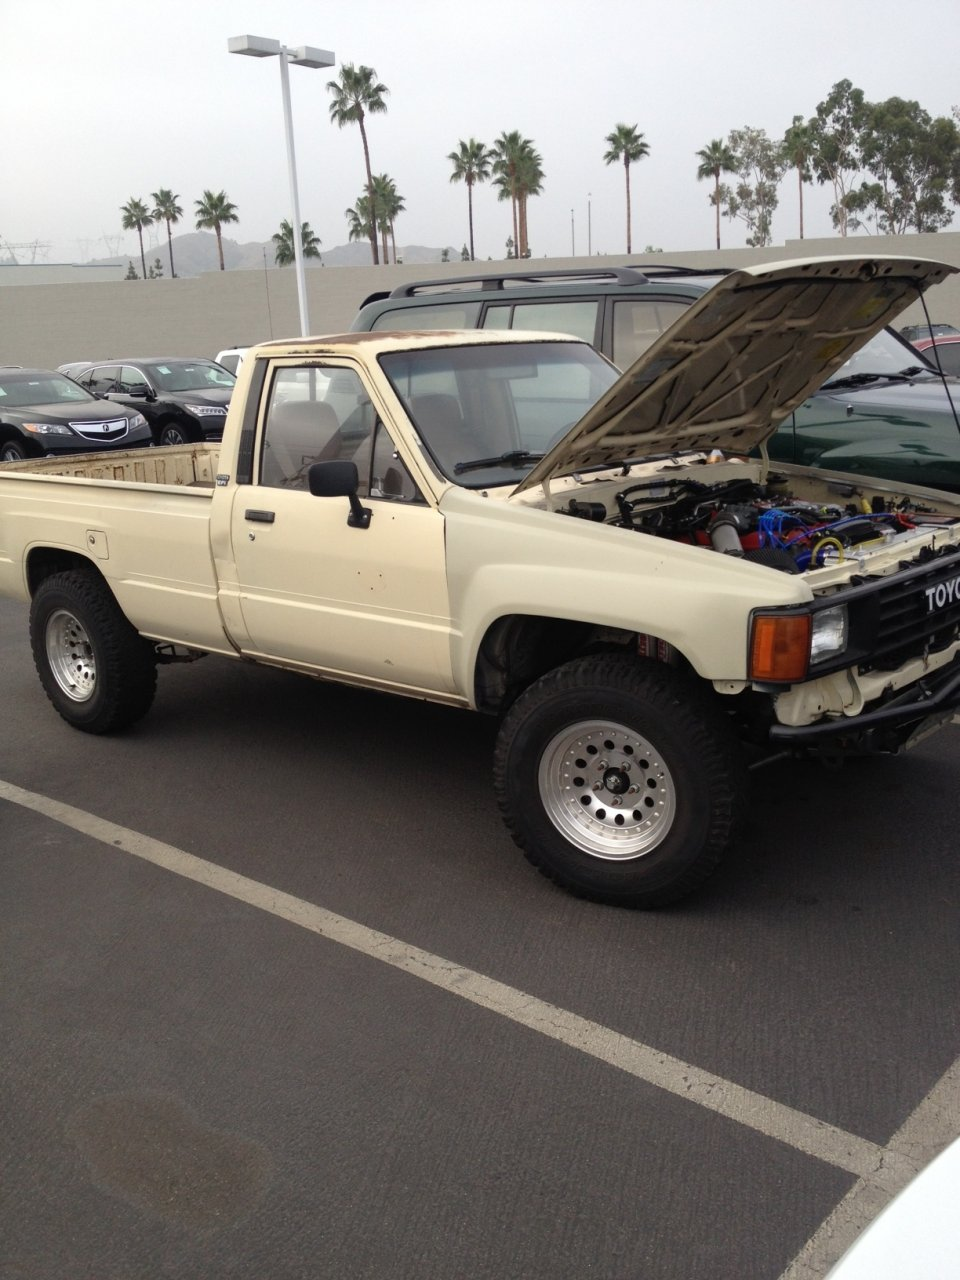 Suspension Diagram 2004 Toyota Ta a Prerunner further Peterbilt Coolant Level Sensor Schematic moreover 239189 Big Tires moreover 1985 Toyota Pickup 2wd With 7mge Supra Engine as well ProdView. on toyota pickup rear pre runner kit